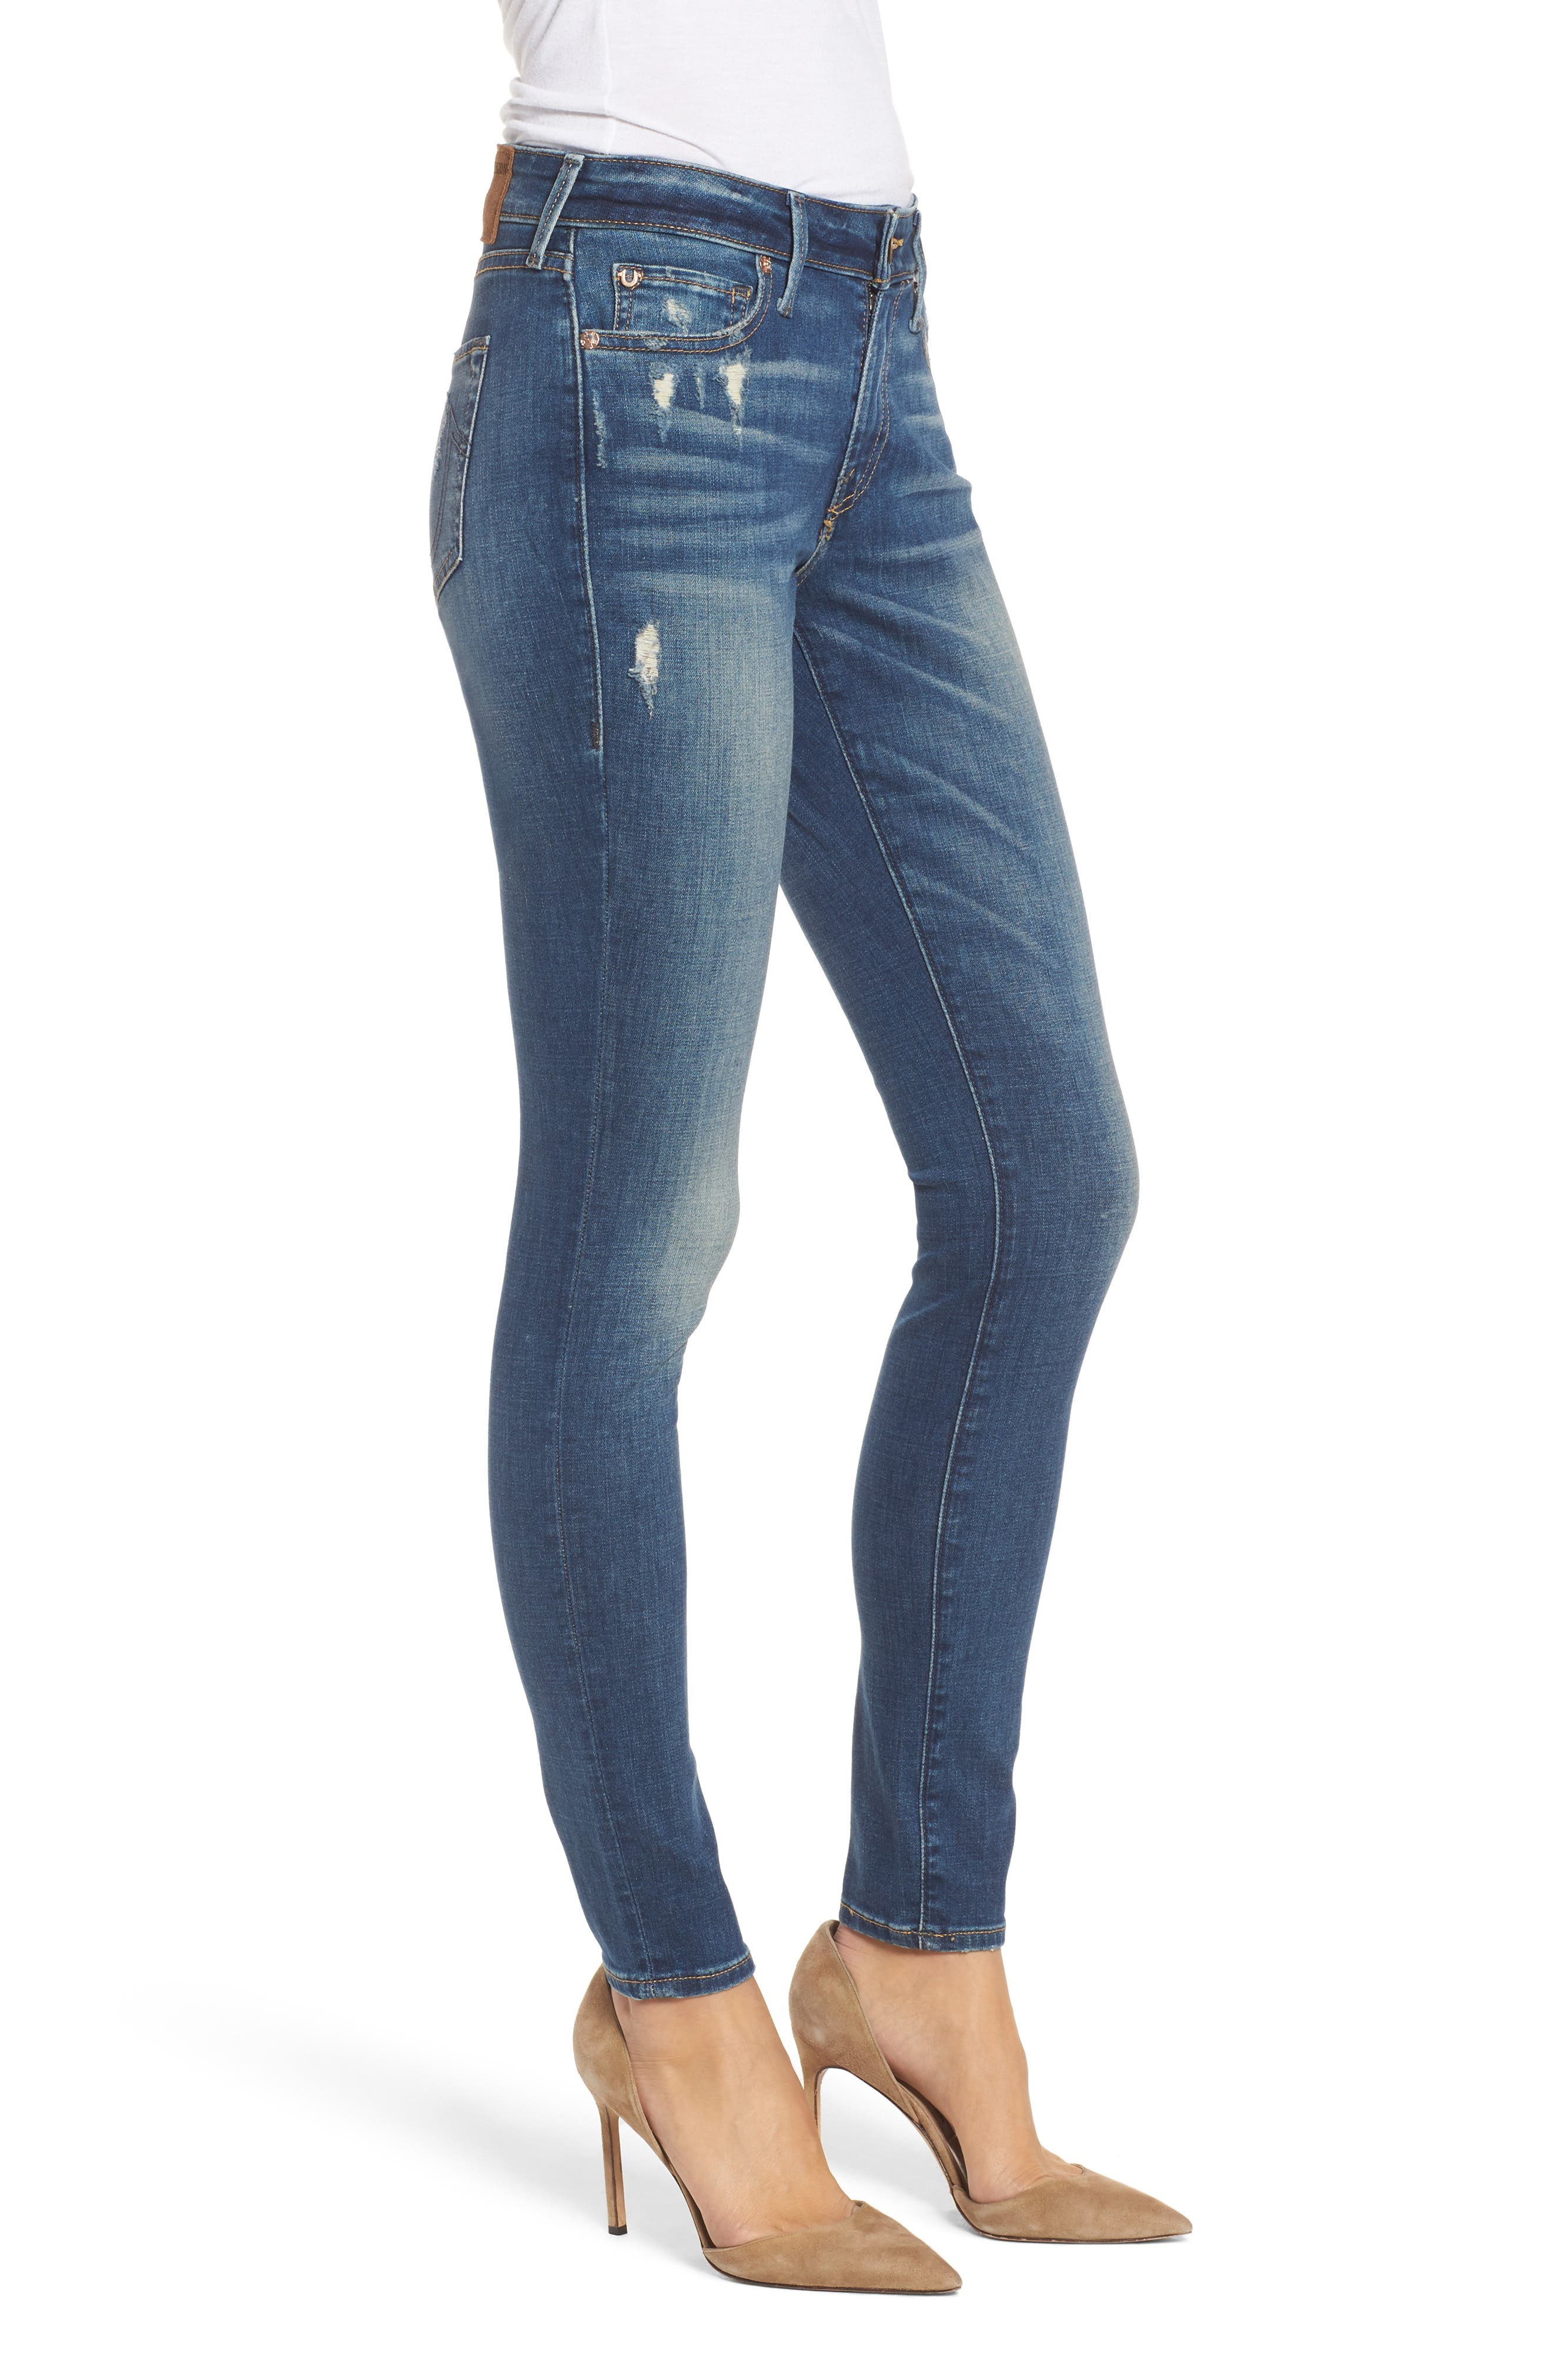 Jennie Curvy Ankle Skinny Jeans,                             Alternate thumbnail 3, color,                             401